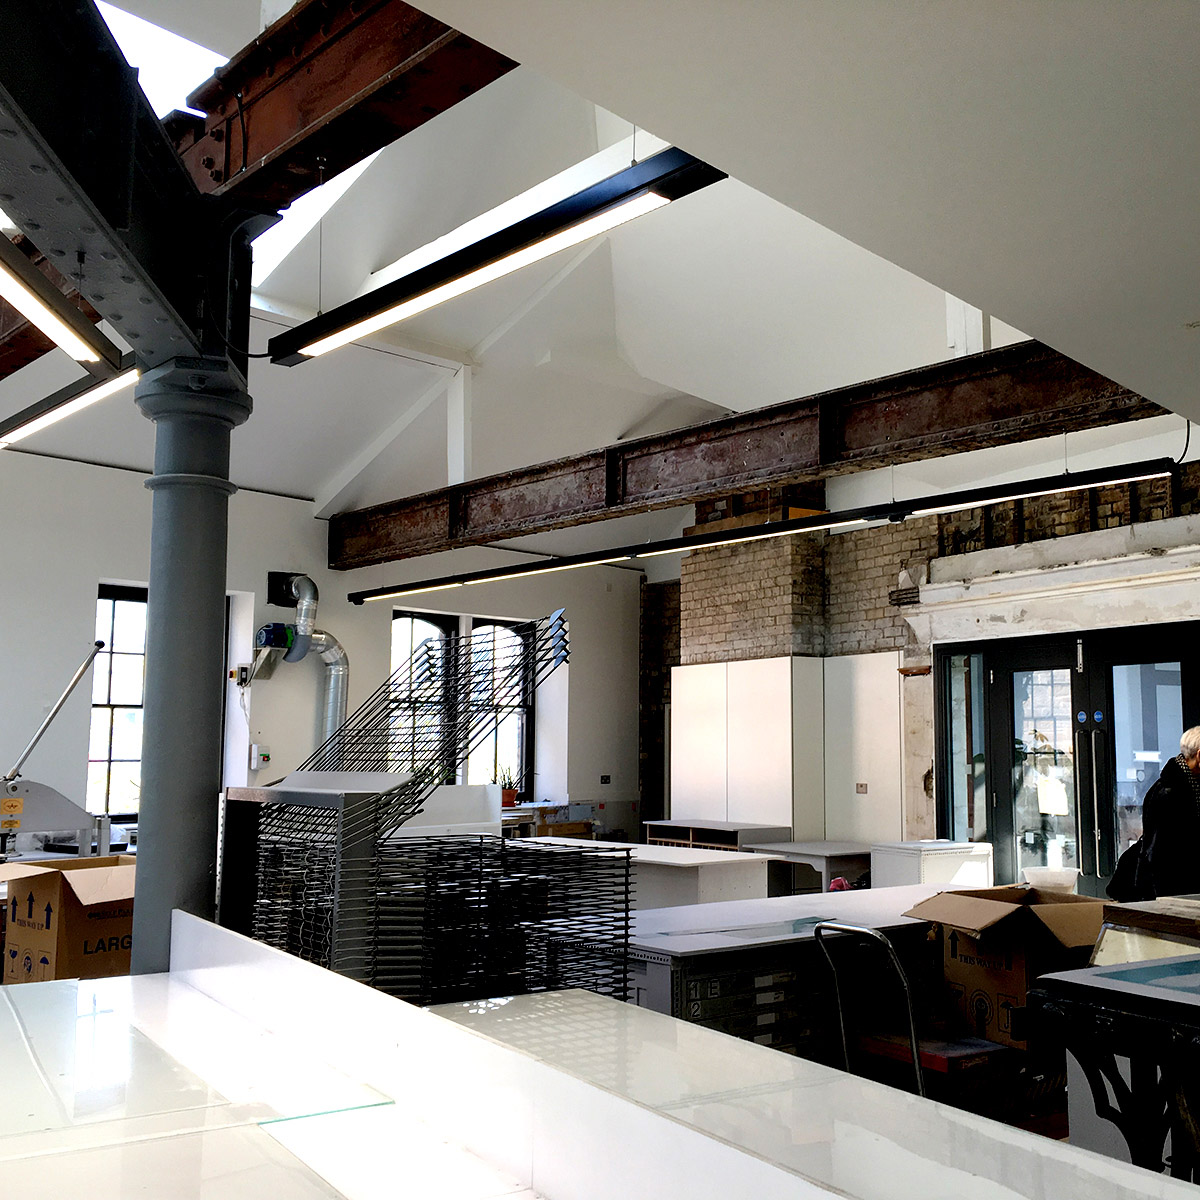 New print workshop facilities on upper level (Page \ Park, architects)